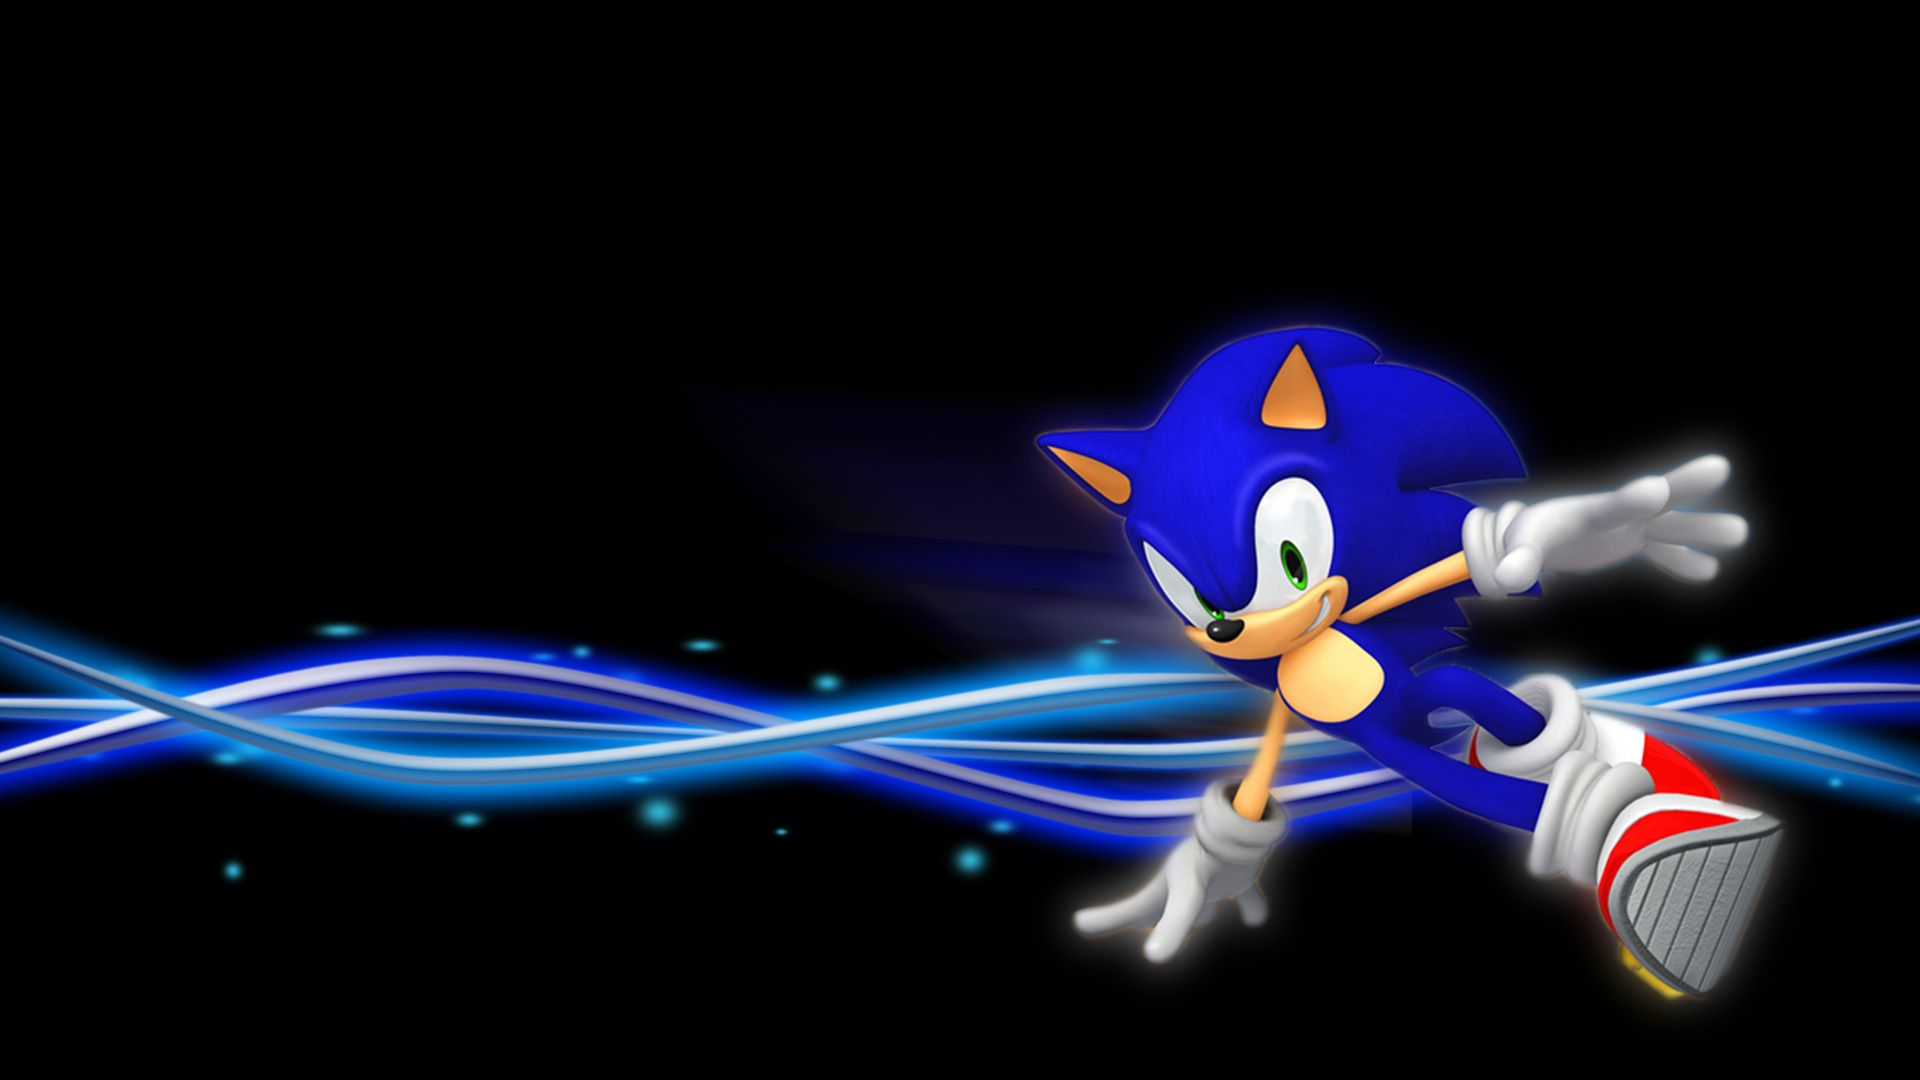 Sonic The Hedgehog Wallpaper Awesome Sonic Sonic Sonic The Hedgehog Cool Wallpaper